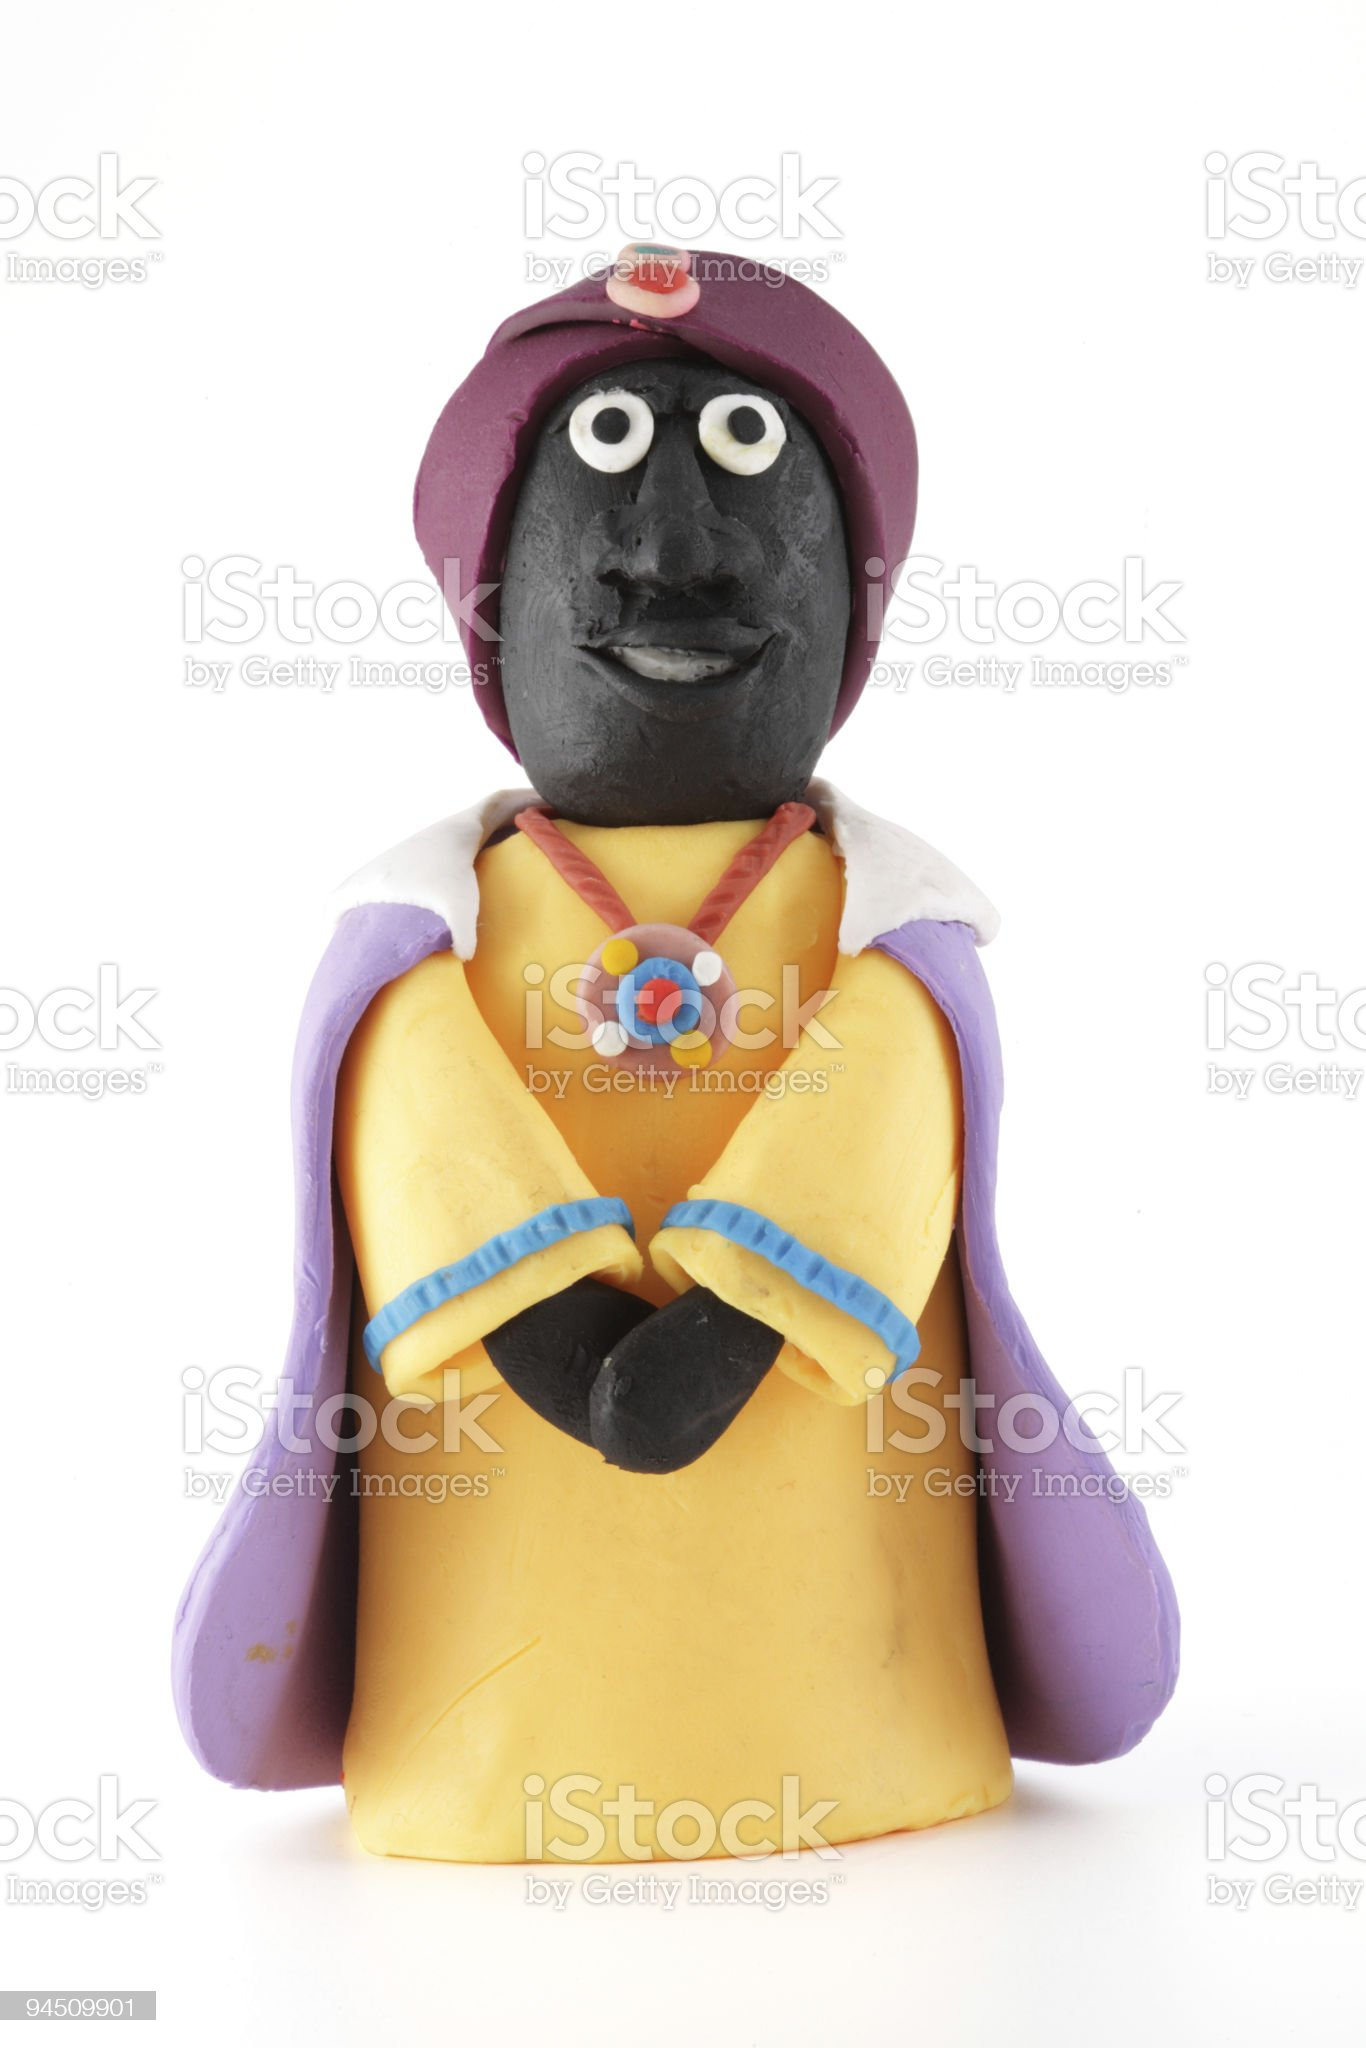 modeling clay figure, king royalty-free stock photo